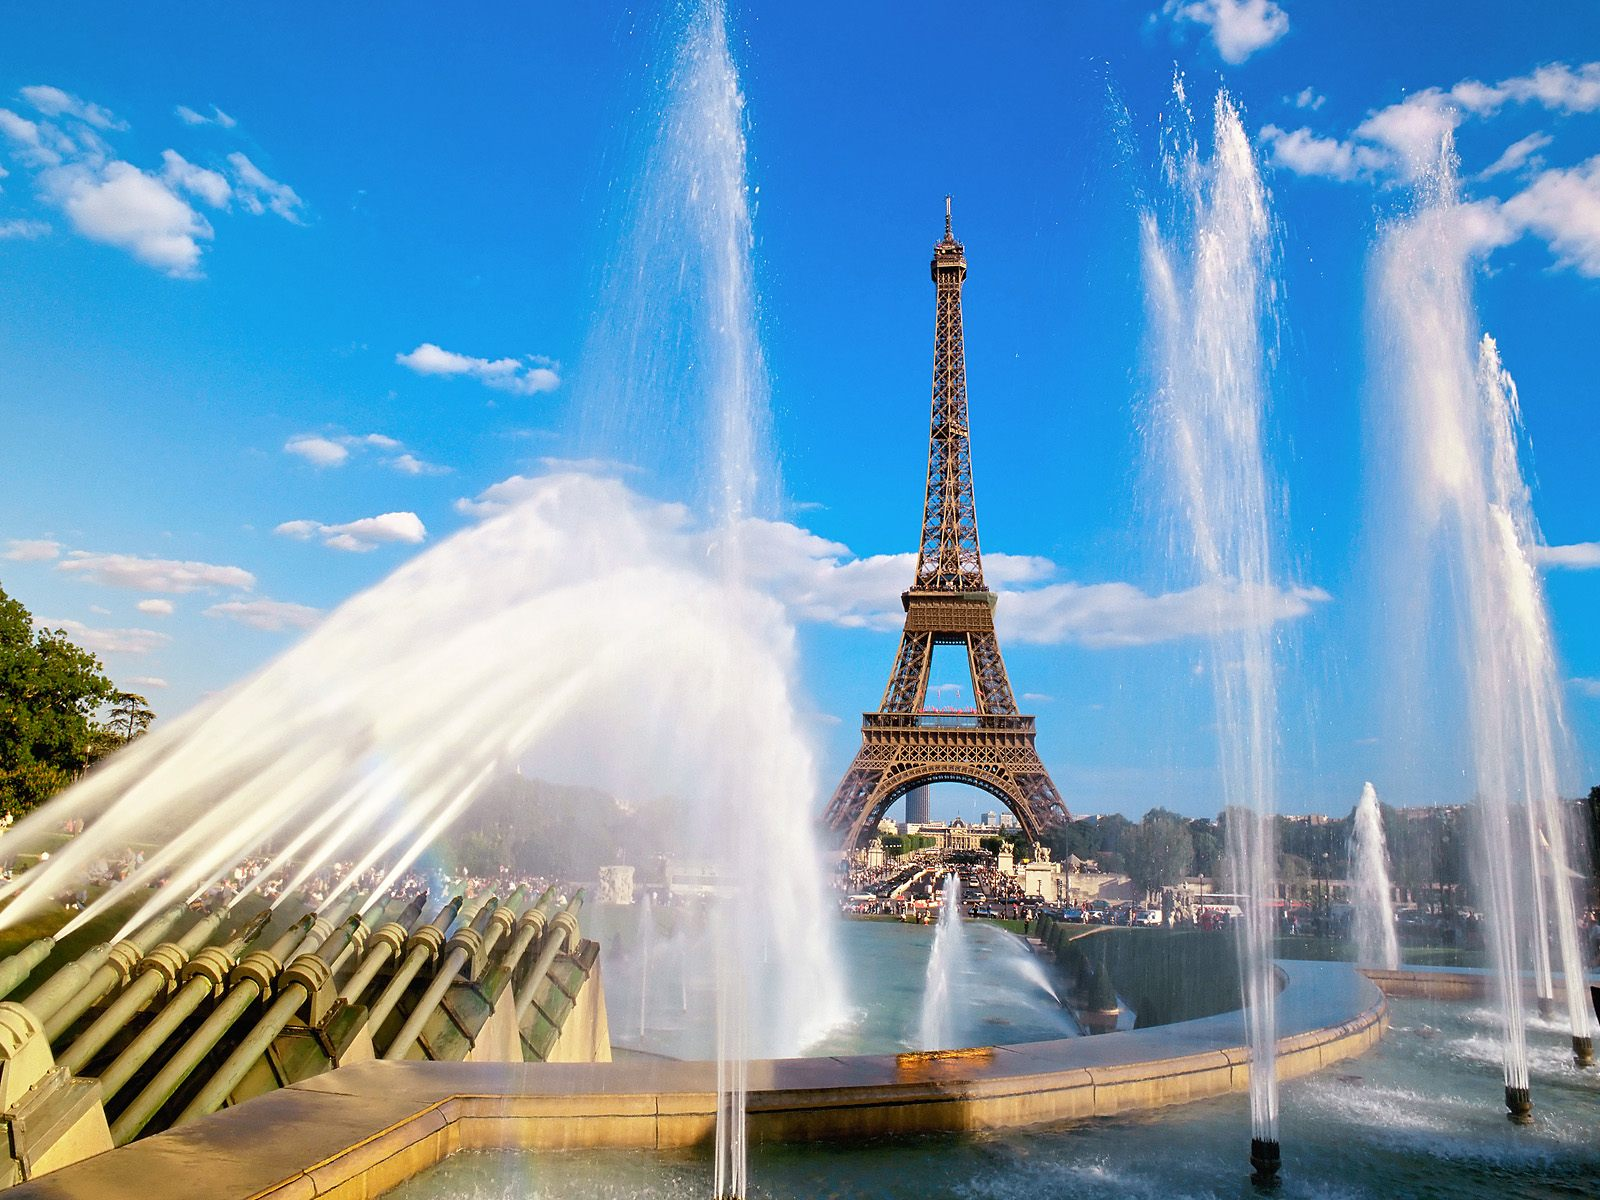 http://4.bp.blogspot.com/_hSrPob3LLog/TAMNgQmtFKI/AAAAAAAAABI/-5BQ41RqHqk/s1600/eiffel-tower-and-fountain-paris-france.jpg